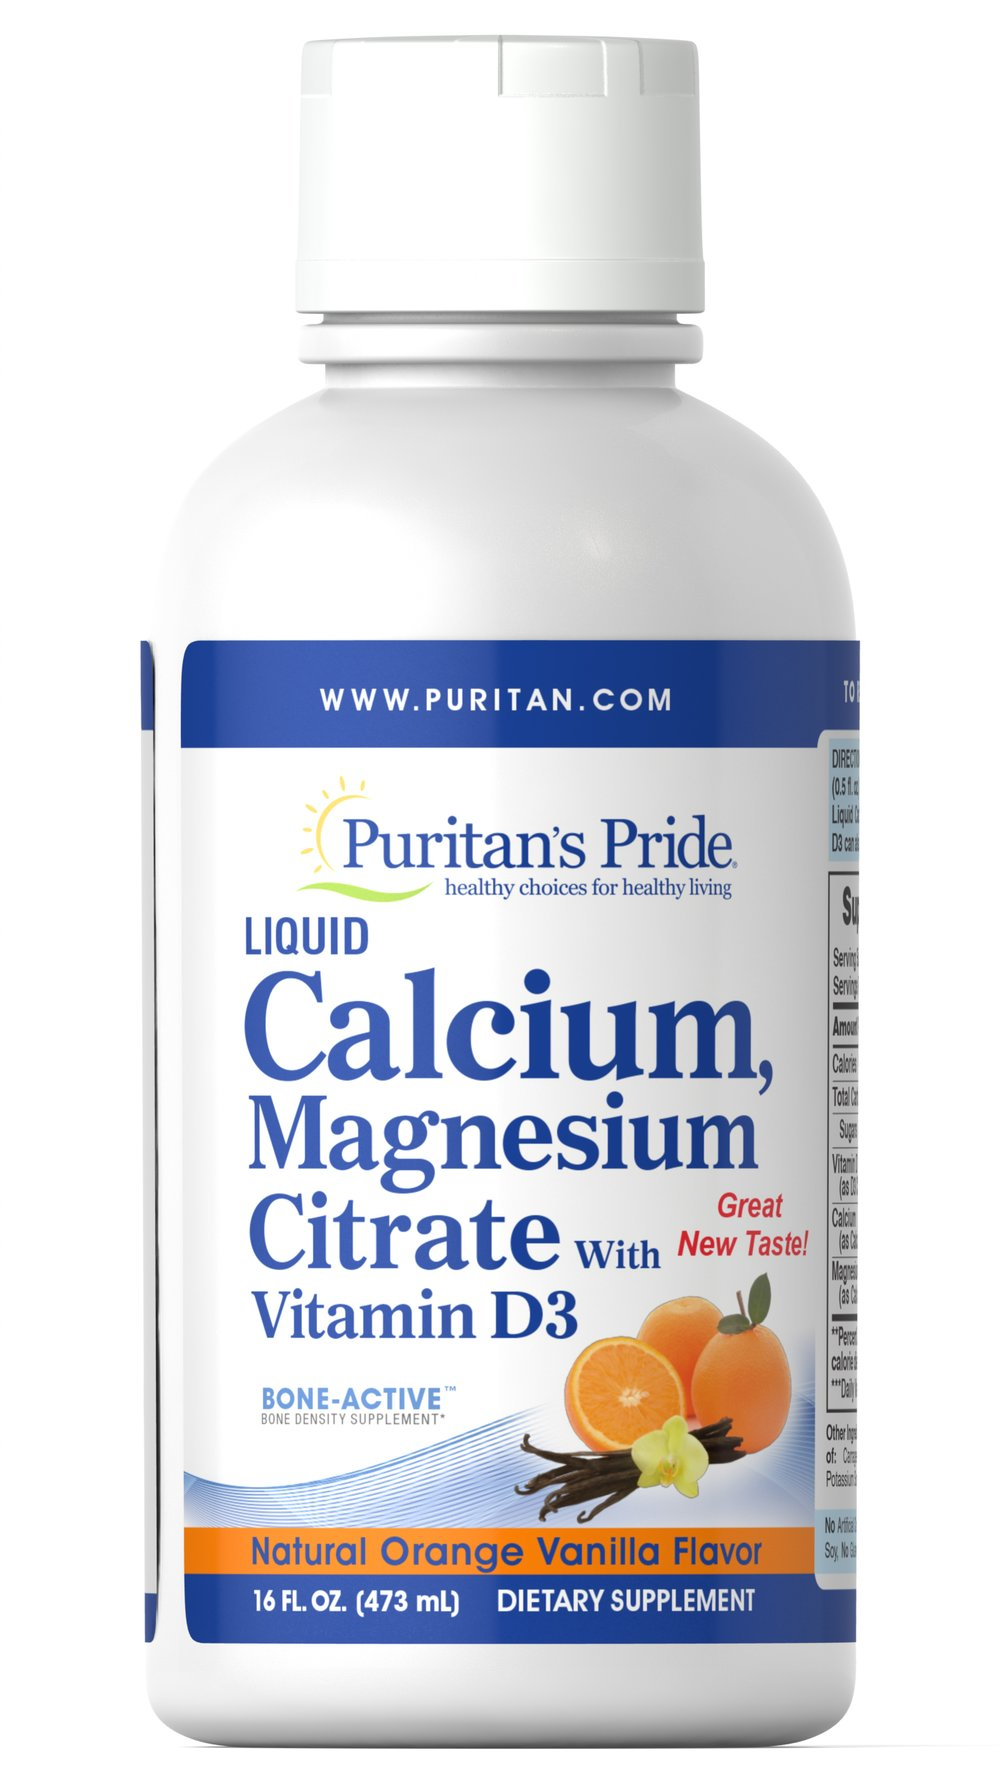 Liquid Calcium Magnesium with Vitamin D3 Orange Vanilla <p>Promote Bone Health with Our Delicious Liquid Formulas**</p><p>Finally! The ability to promote bone health in an easy liquid formula!**</p><p>Our Liquid Calcium Magnesium with Vitamin D3 provides three vital minerals that work synergistically to promote healthy bones.** Calcium supports bone strength, while Magnesium is essential for bone structure and the mineralization of bone.** Vitamin D helps develop st